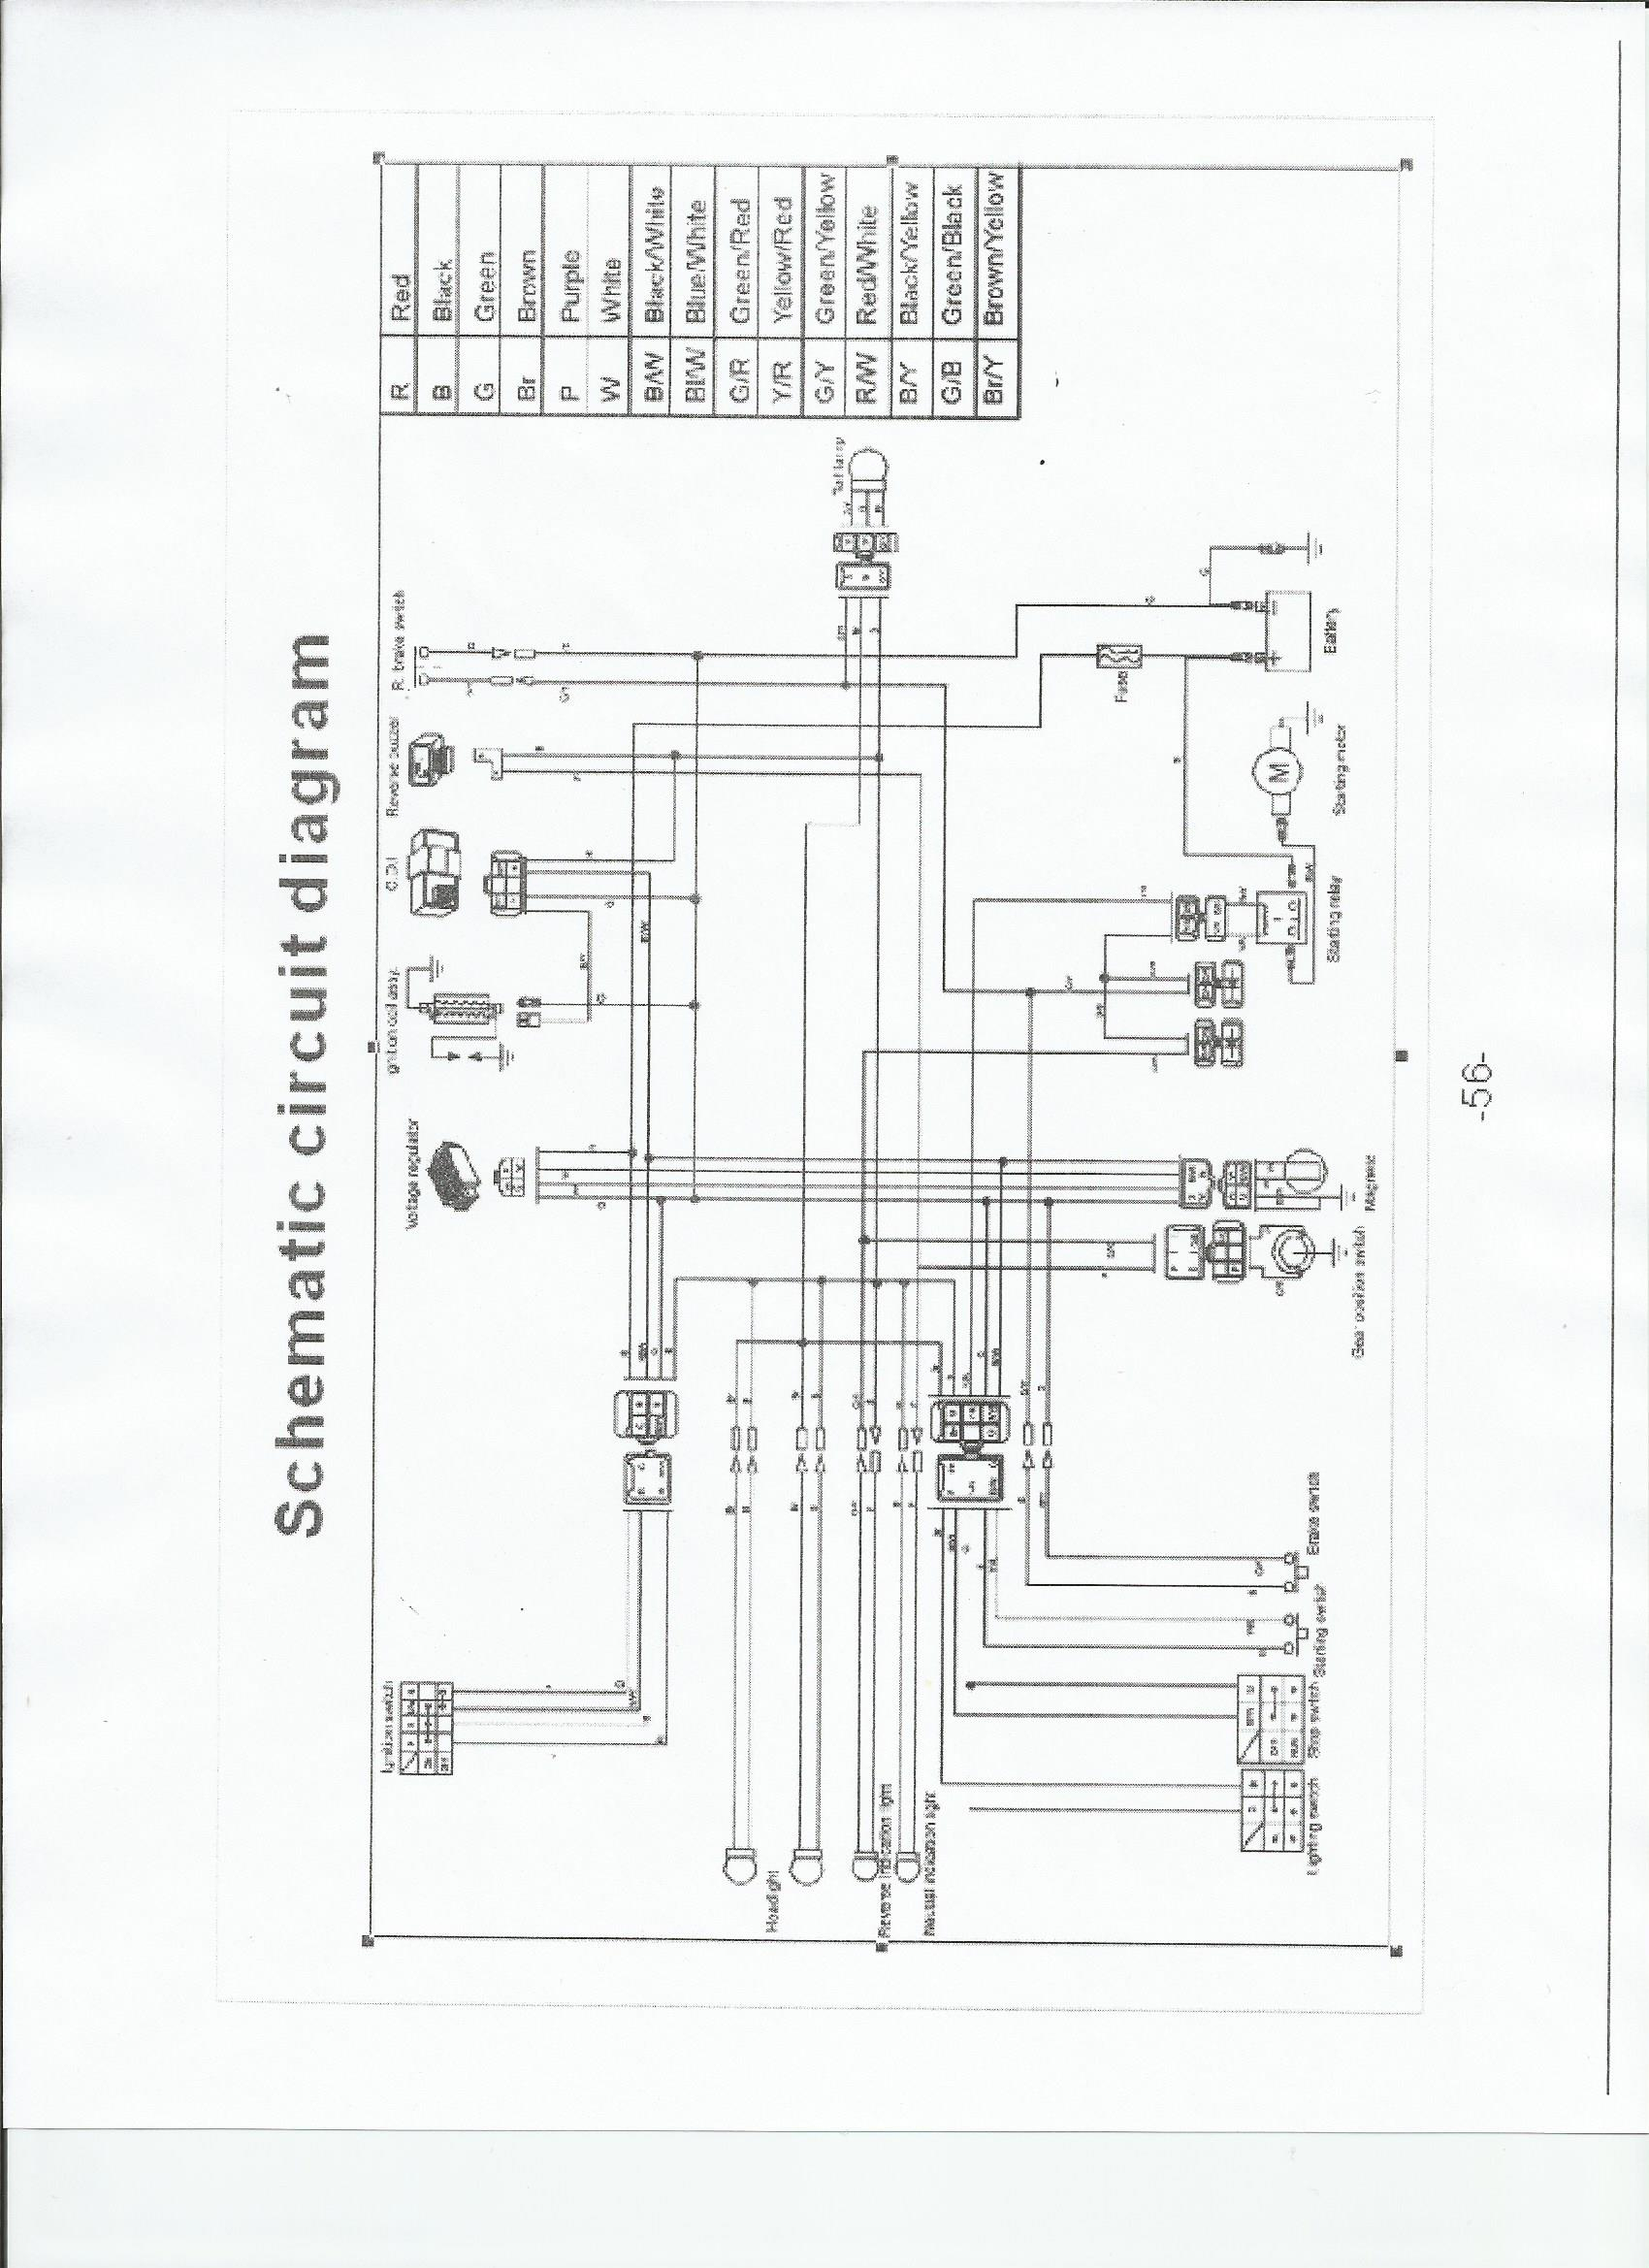 Tao Tao Wiring Schematic In Tao Tao 125 Atv Wiring Diagram - Wiring - Taotao 125 Atv Wiring Diagram